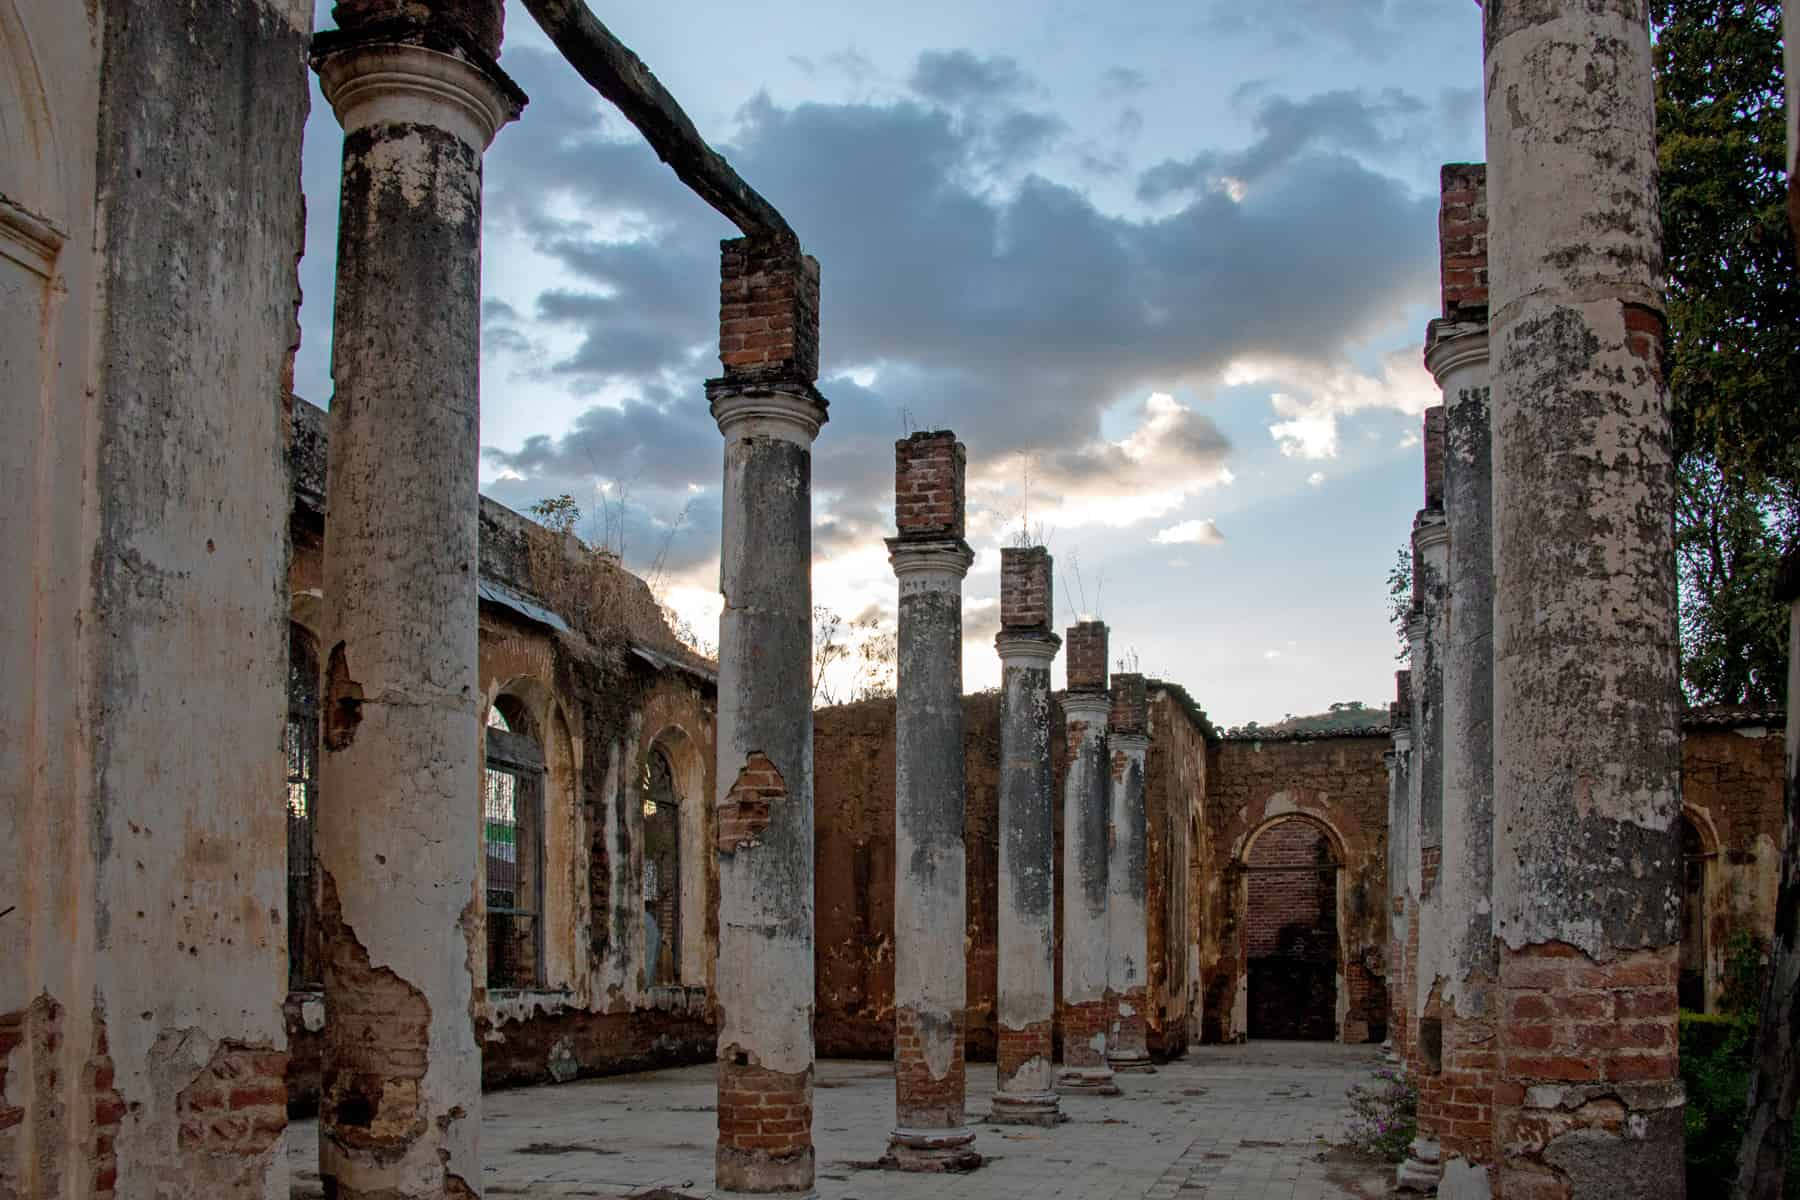 Crumbling pillars of a ruined building at sunset in Santa Ana El Salvador